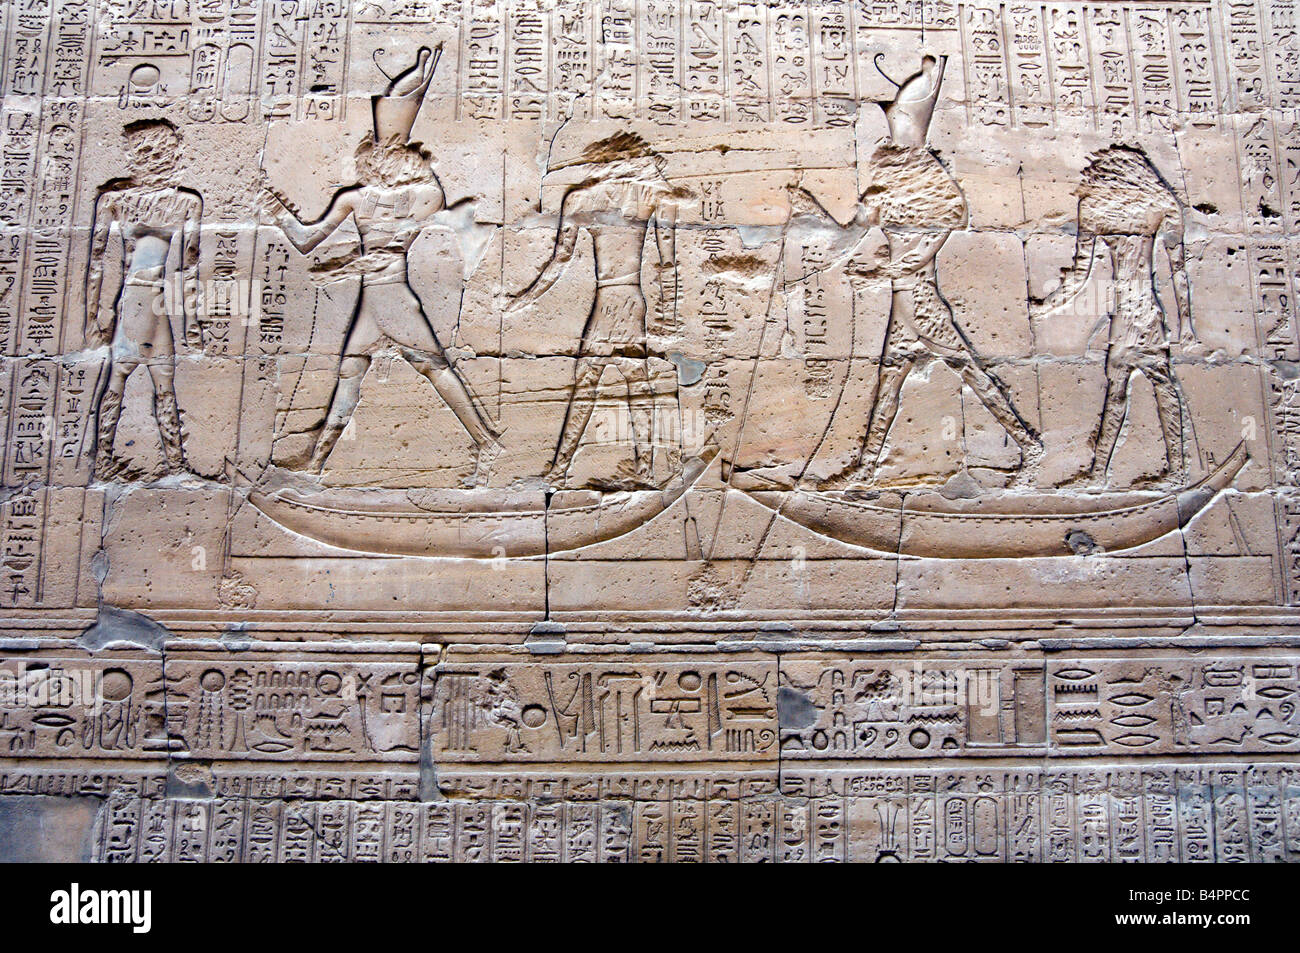 Hieroglyphs at the ruins and remains of the Horus Temple at Edfu Egypt - Stock Image